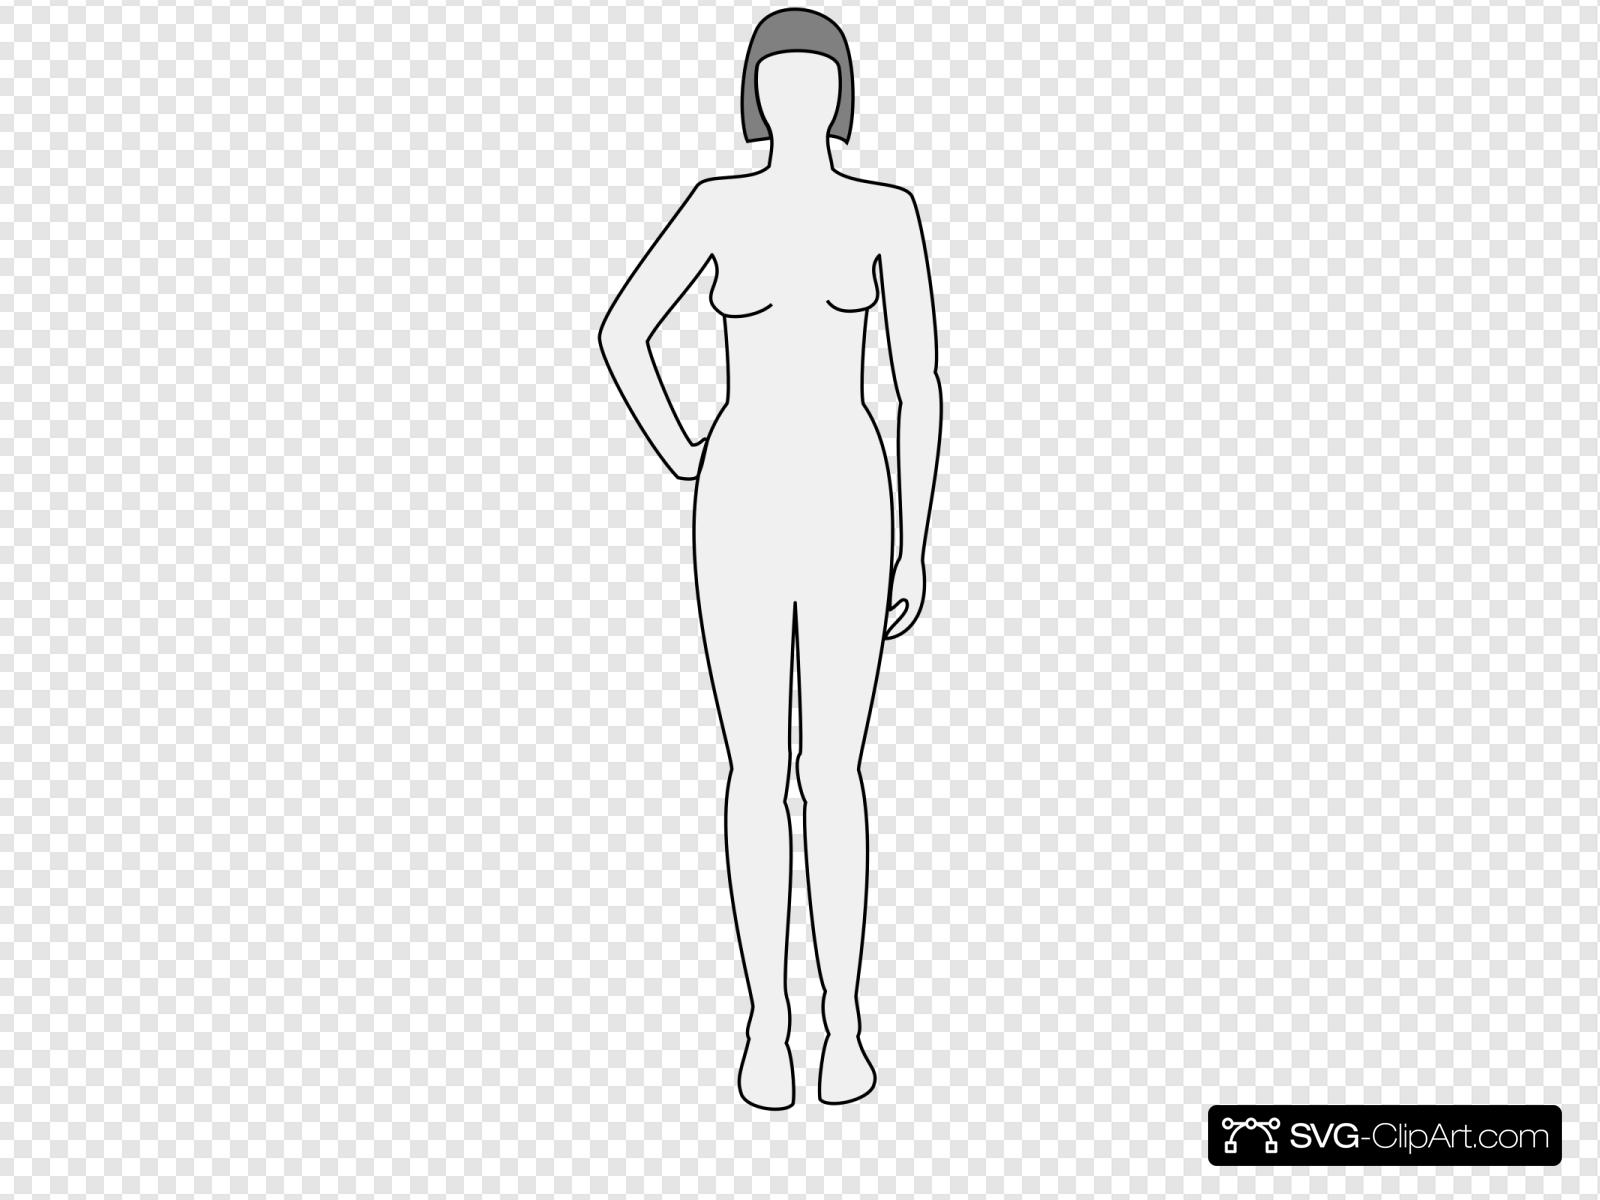 Free Female Body Template Clipart in AI, SVG, EPS or PSD